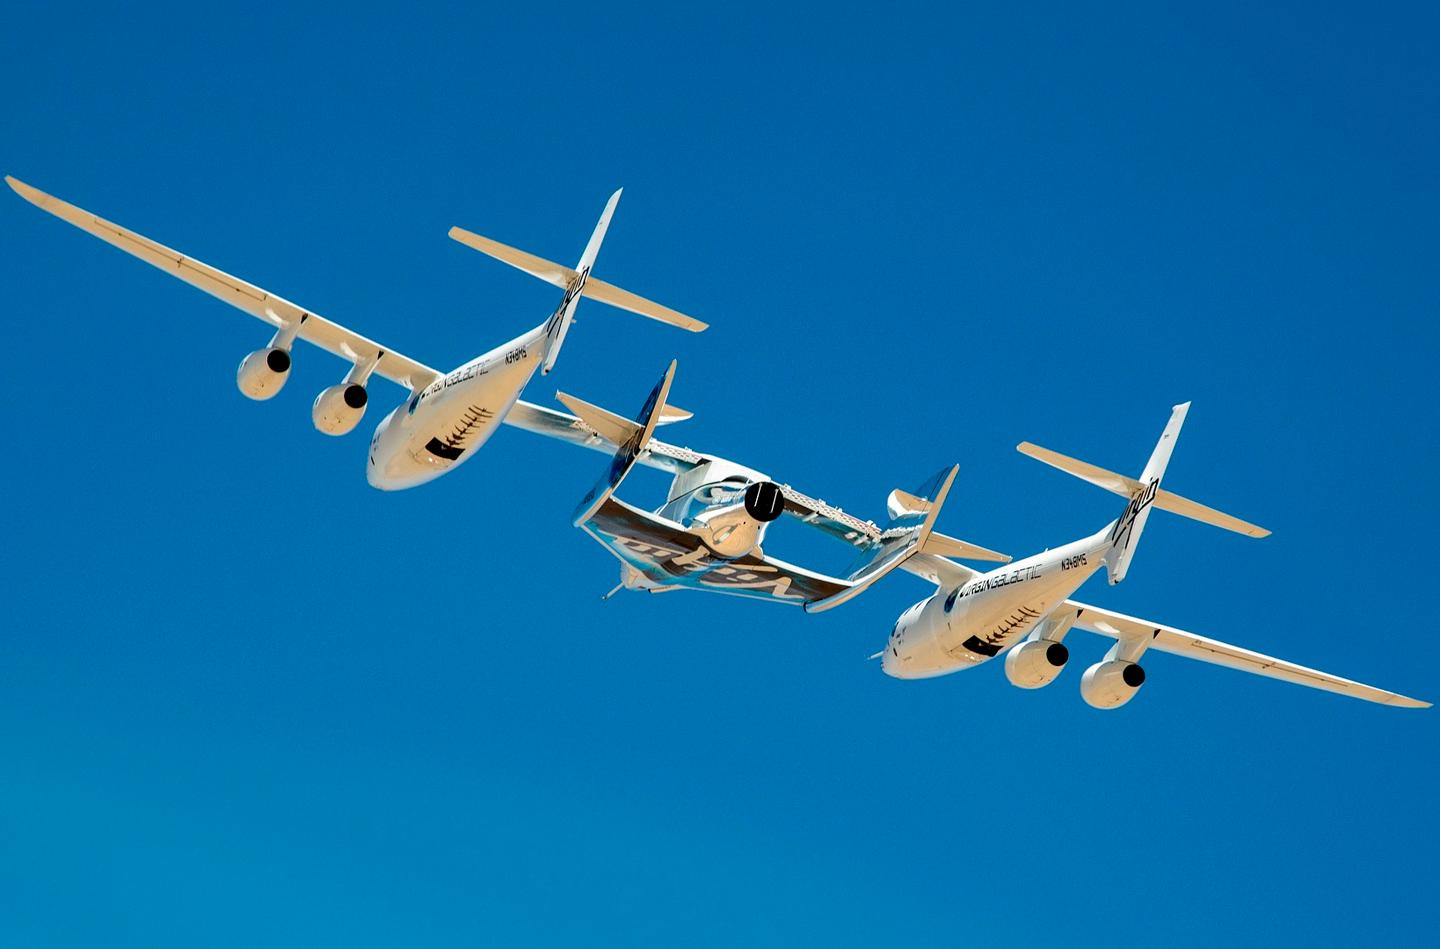 This was Virgin Galactic's first flight since a fatal test flight accident